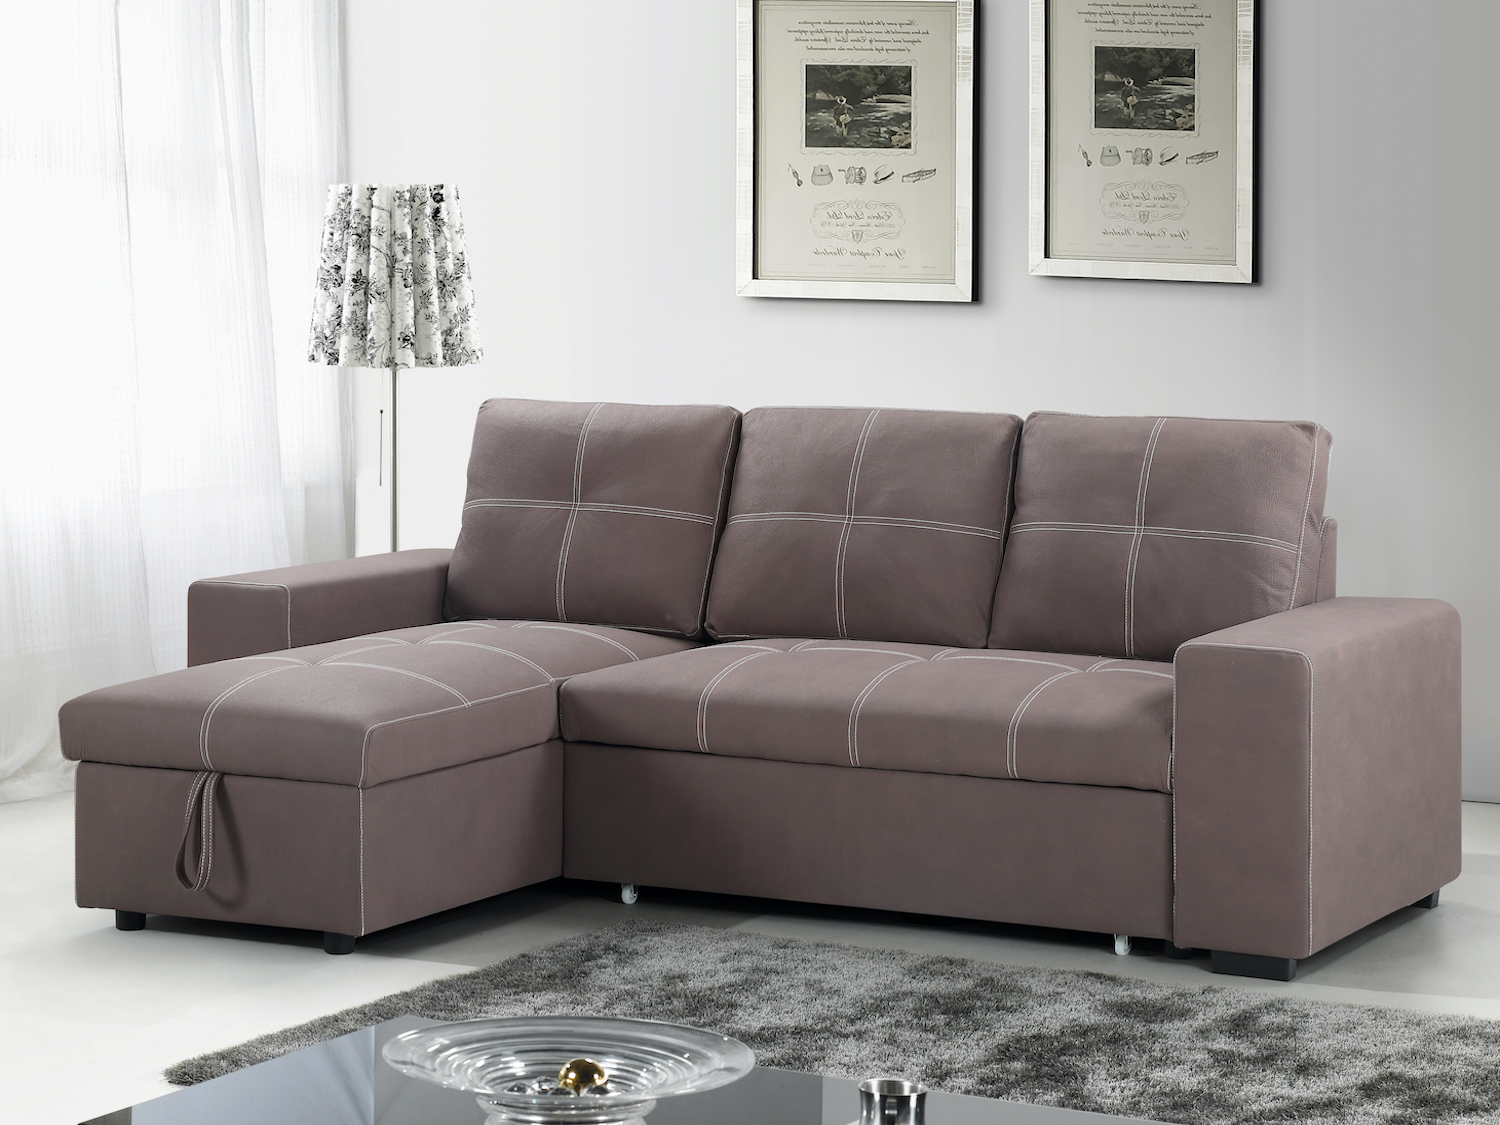 Sofabed Sectional, IF-9419, Sofa Bed/Klik Klak/Futons, Sofabed Sectional from IFDC by Midha Furniture serving Brampton, Mississauga, Etobicoke, Toronto, Scraborough, Caledon, Cambridge, Oakville, Markham, Ajax, Pickering, Oshawa, Richmondhill, Kitchener, Hamilton, Cambridge, Waterloo and GTA area